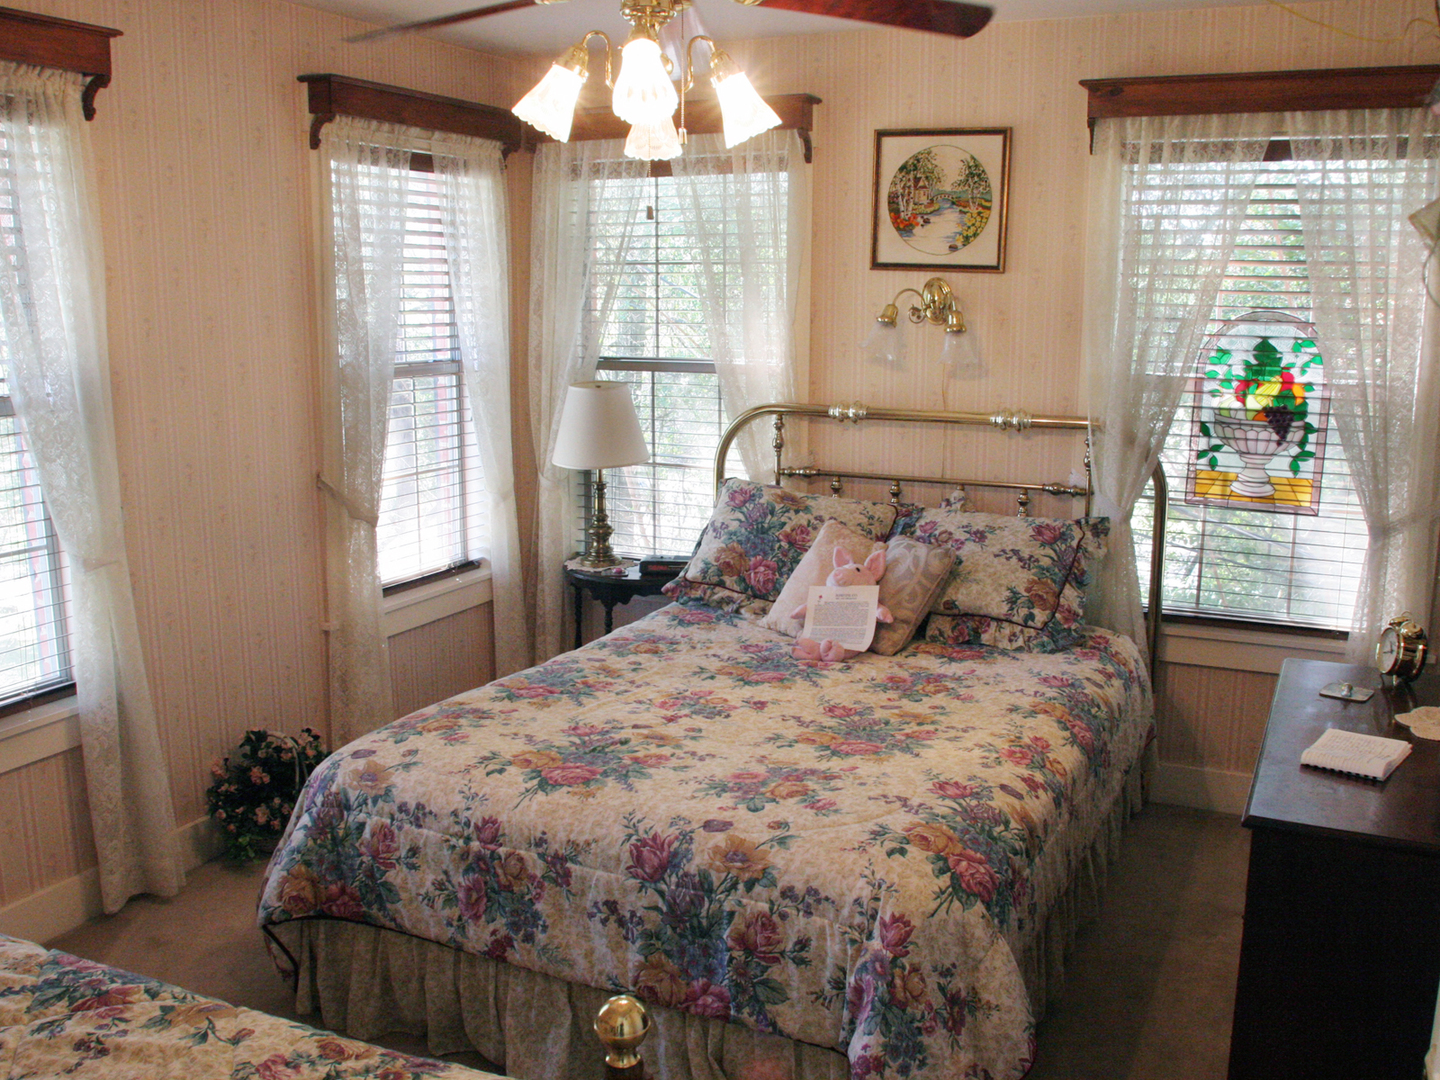 A bedroom with a bed and desk in a room at Rosevine Inn Bed & Breakfast and Extended Stay Lodging.